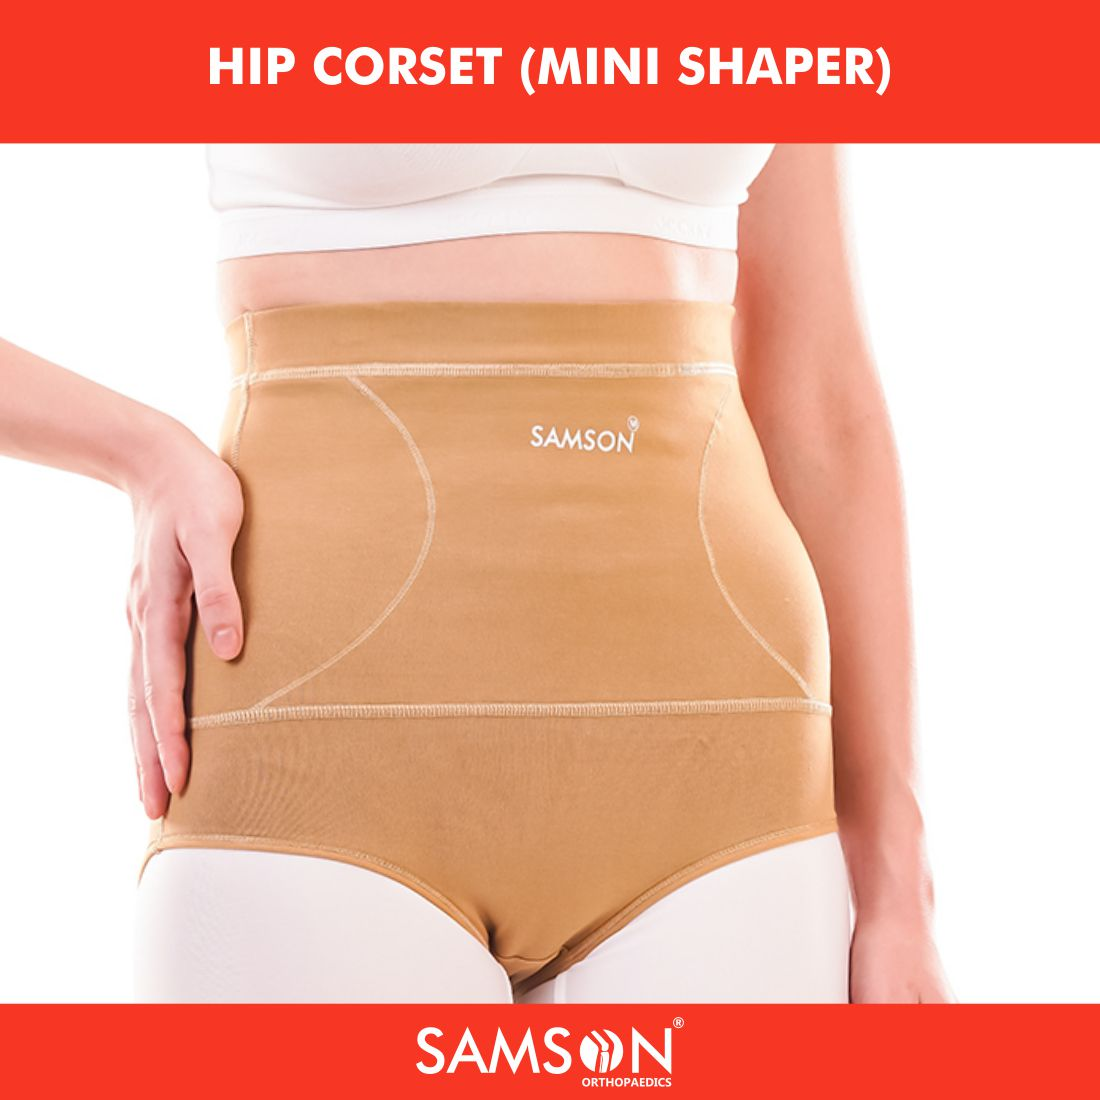 CORSET(COMPRESSION GARMENTS)